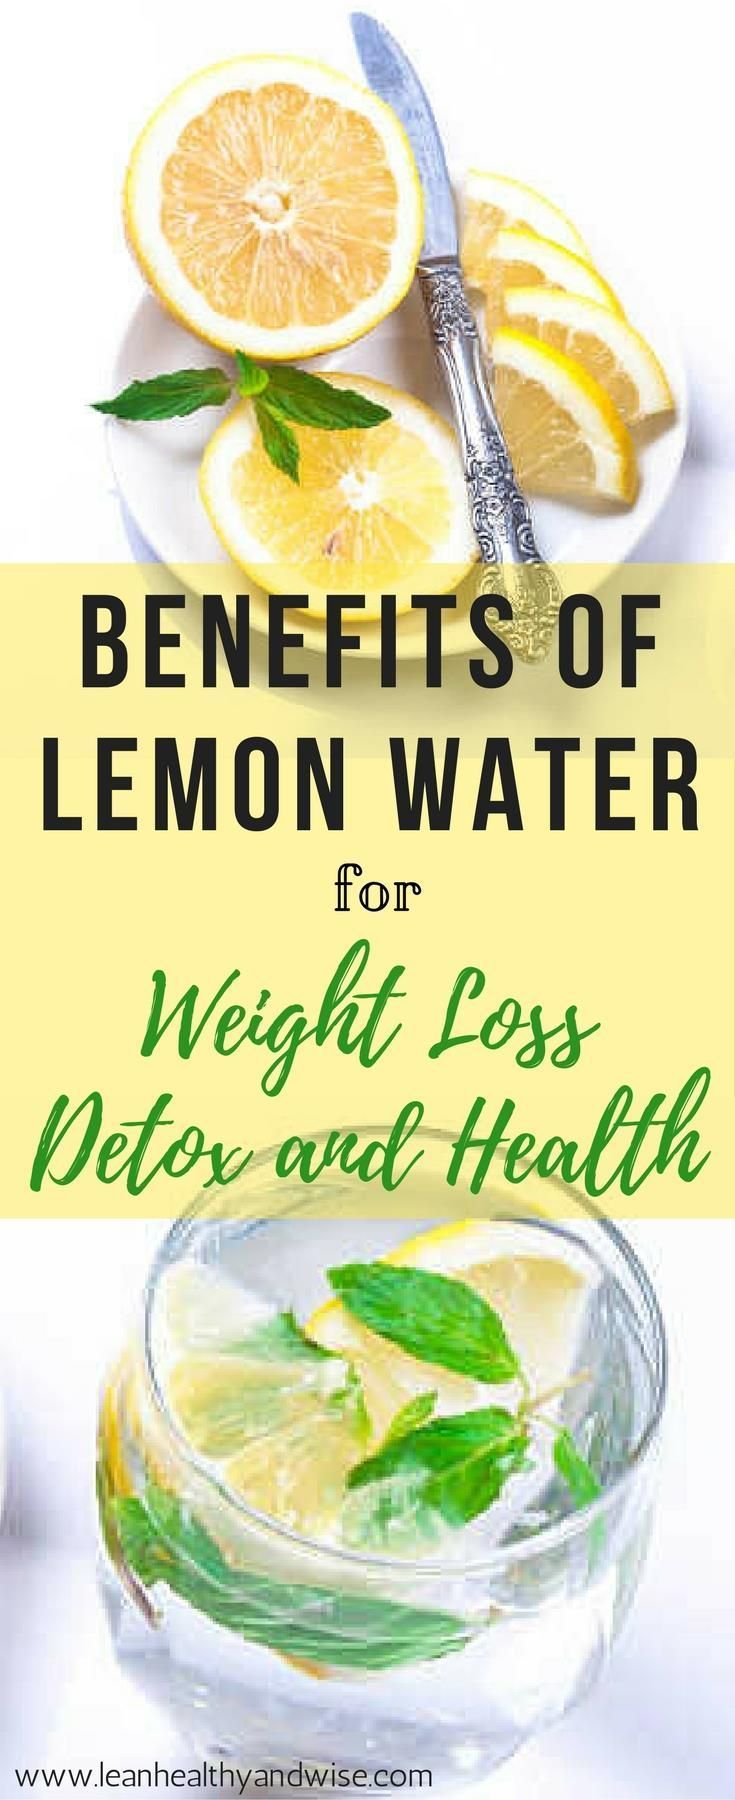 Lemon is known for its medicinal, antibacterial and therapeutic properties. Discover the health benefits of lemon water for detox, weight loss and wellness. via @leanhealthywise